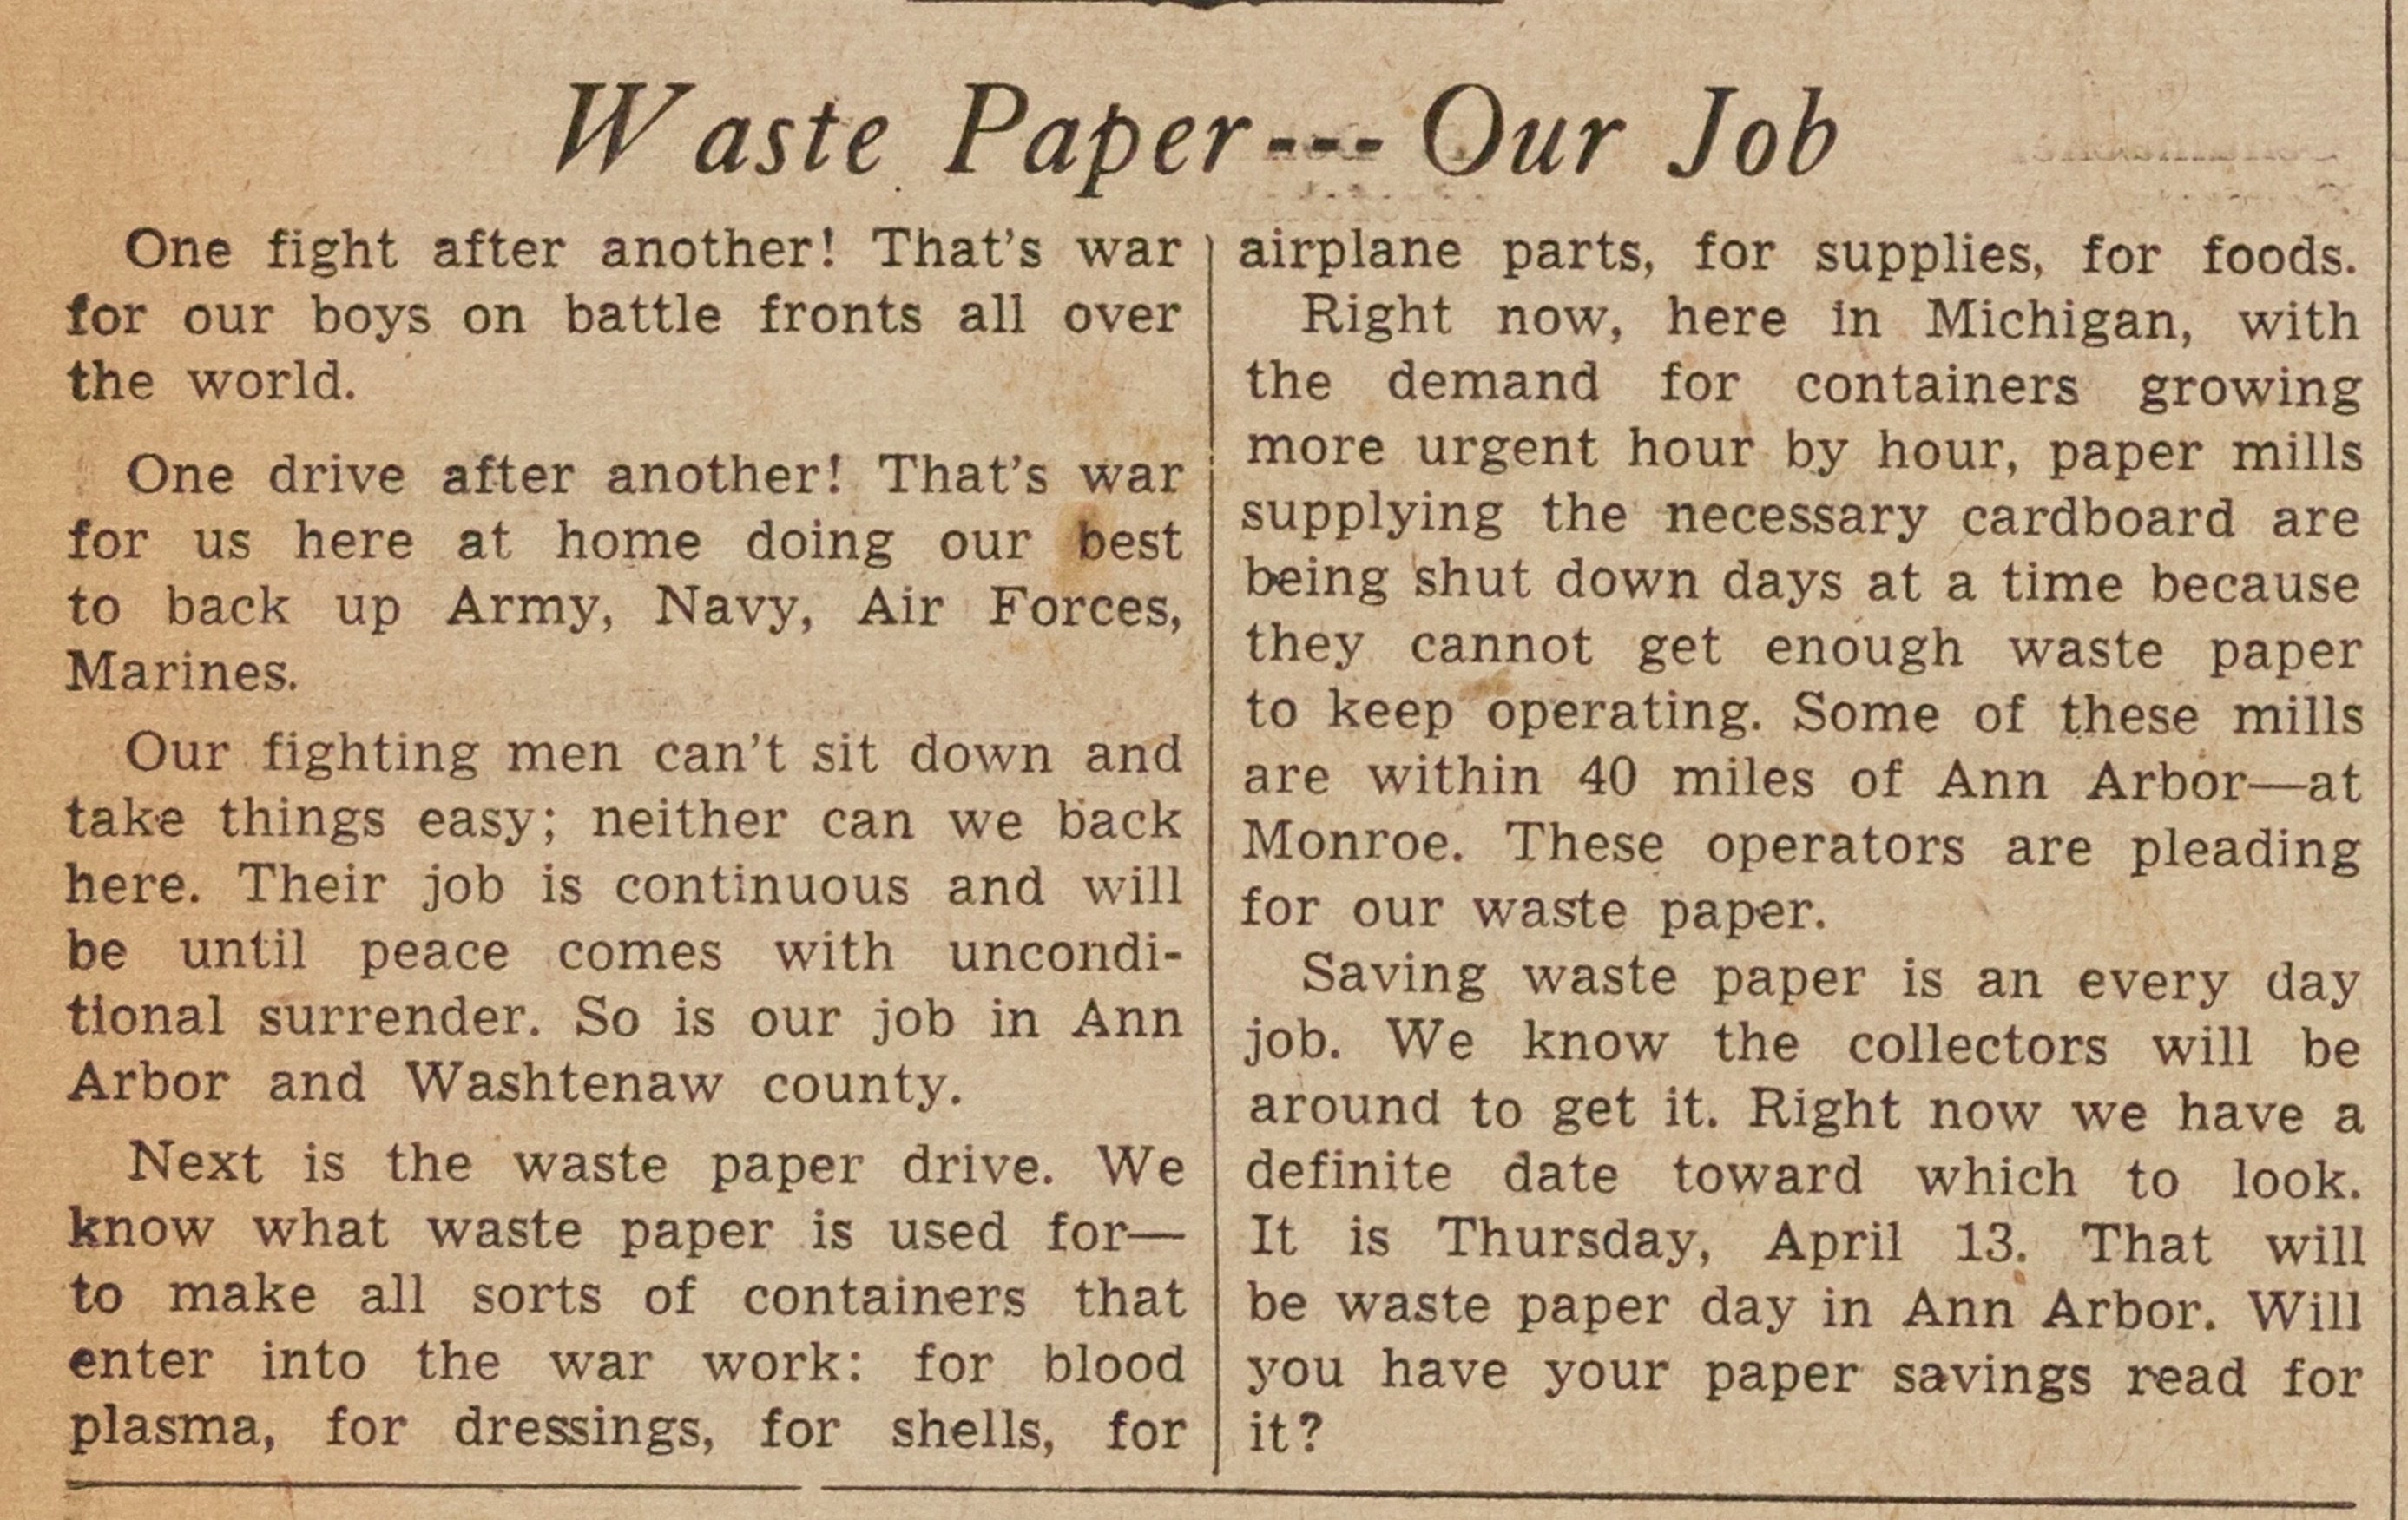 Waste Paper - Our Job image